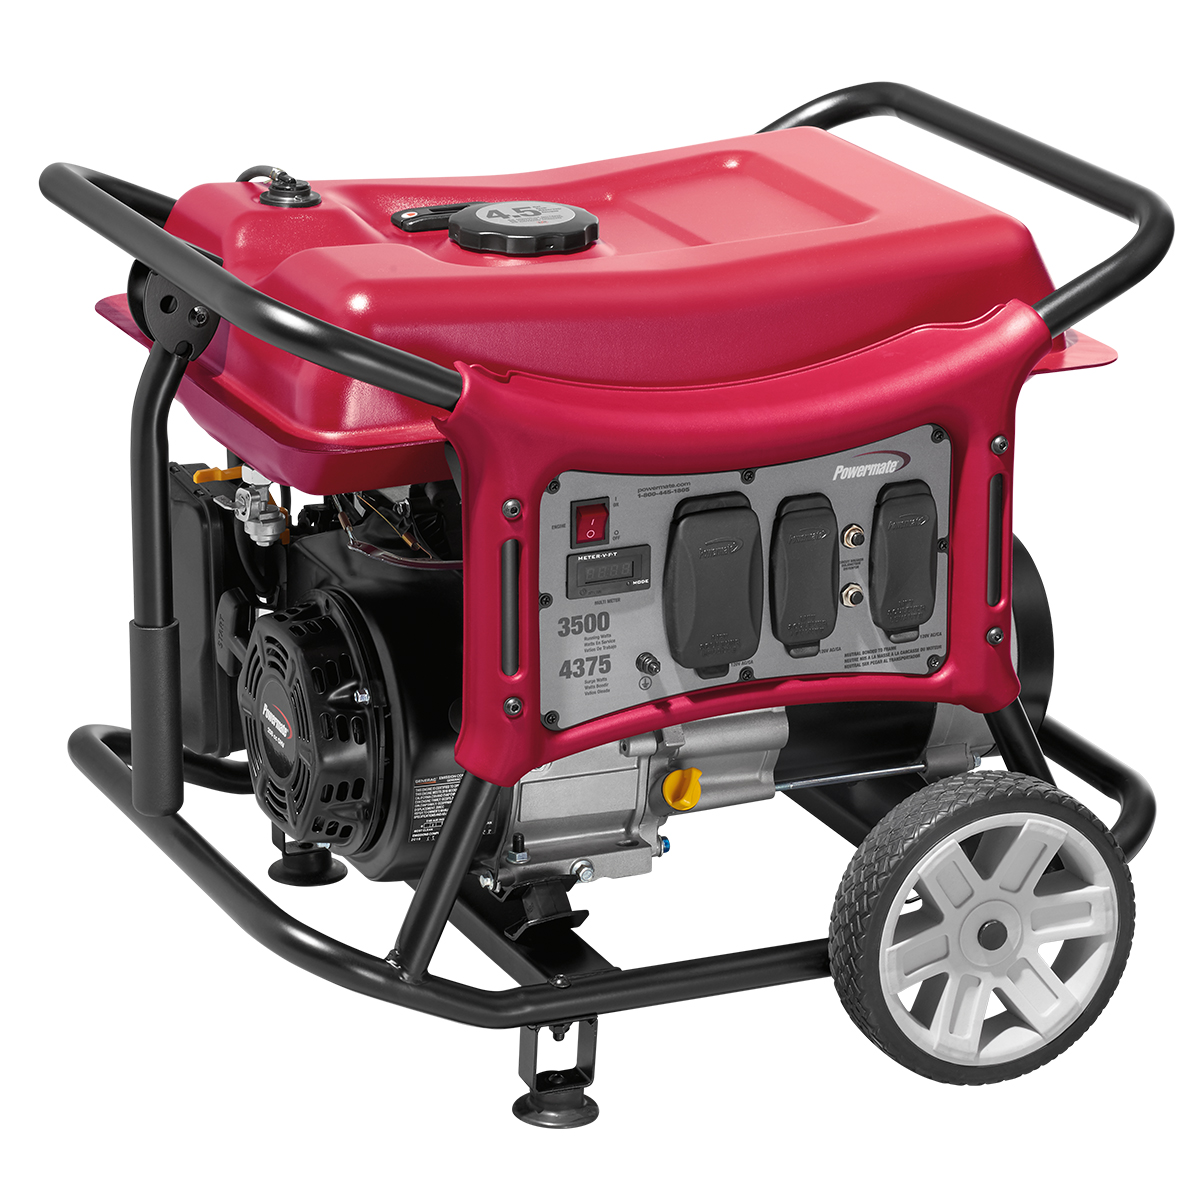 Powermate 3500 Watt Portable Generator, CARB